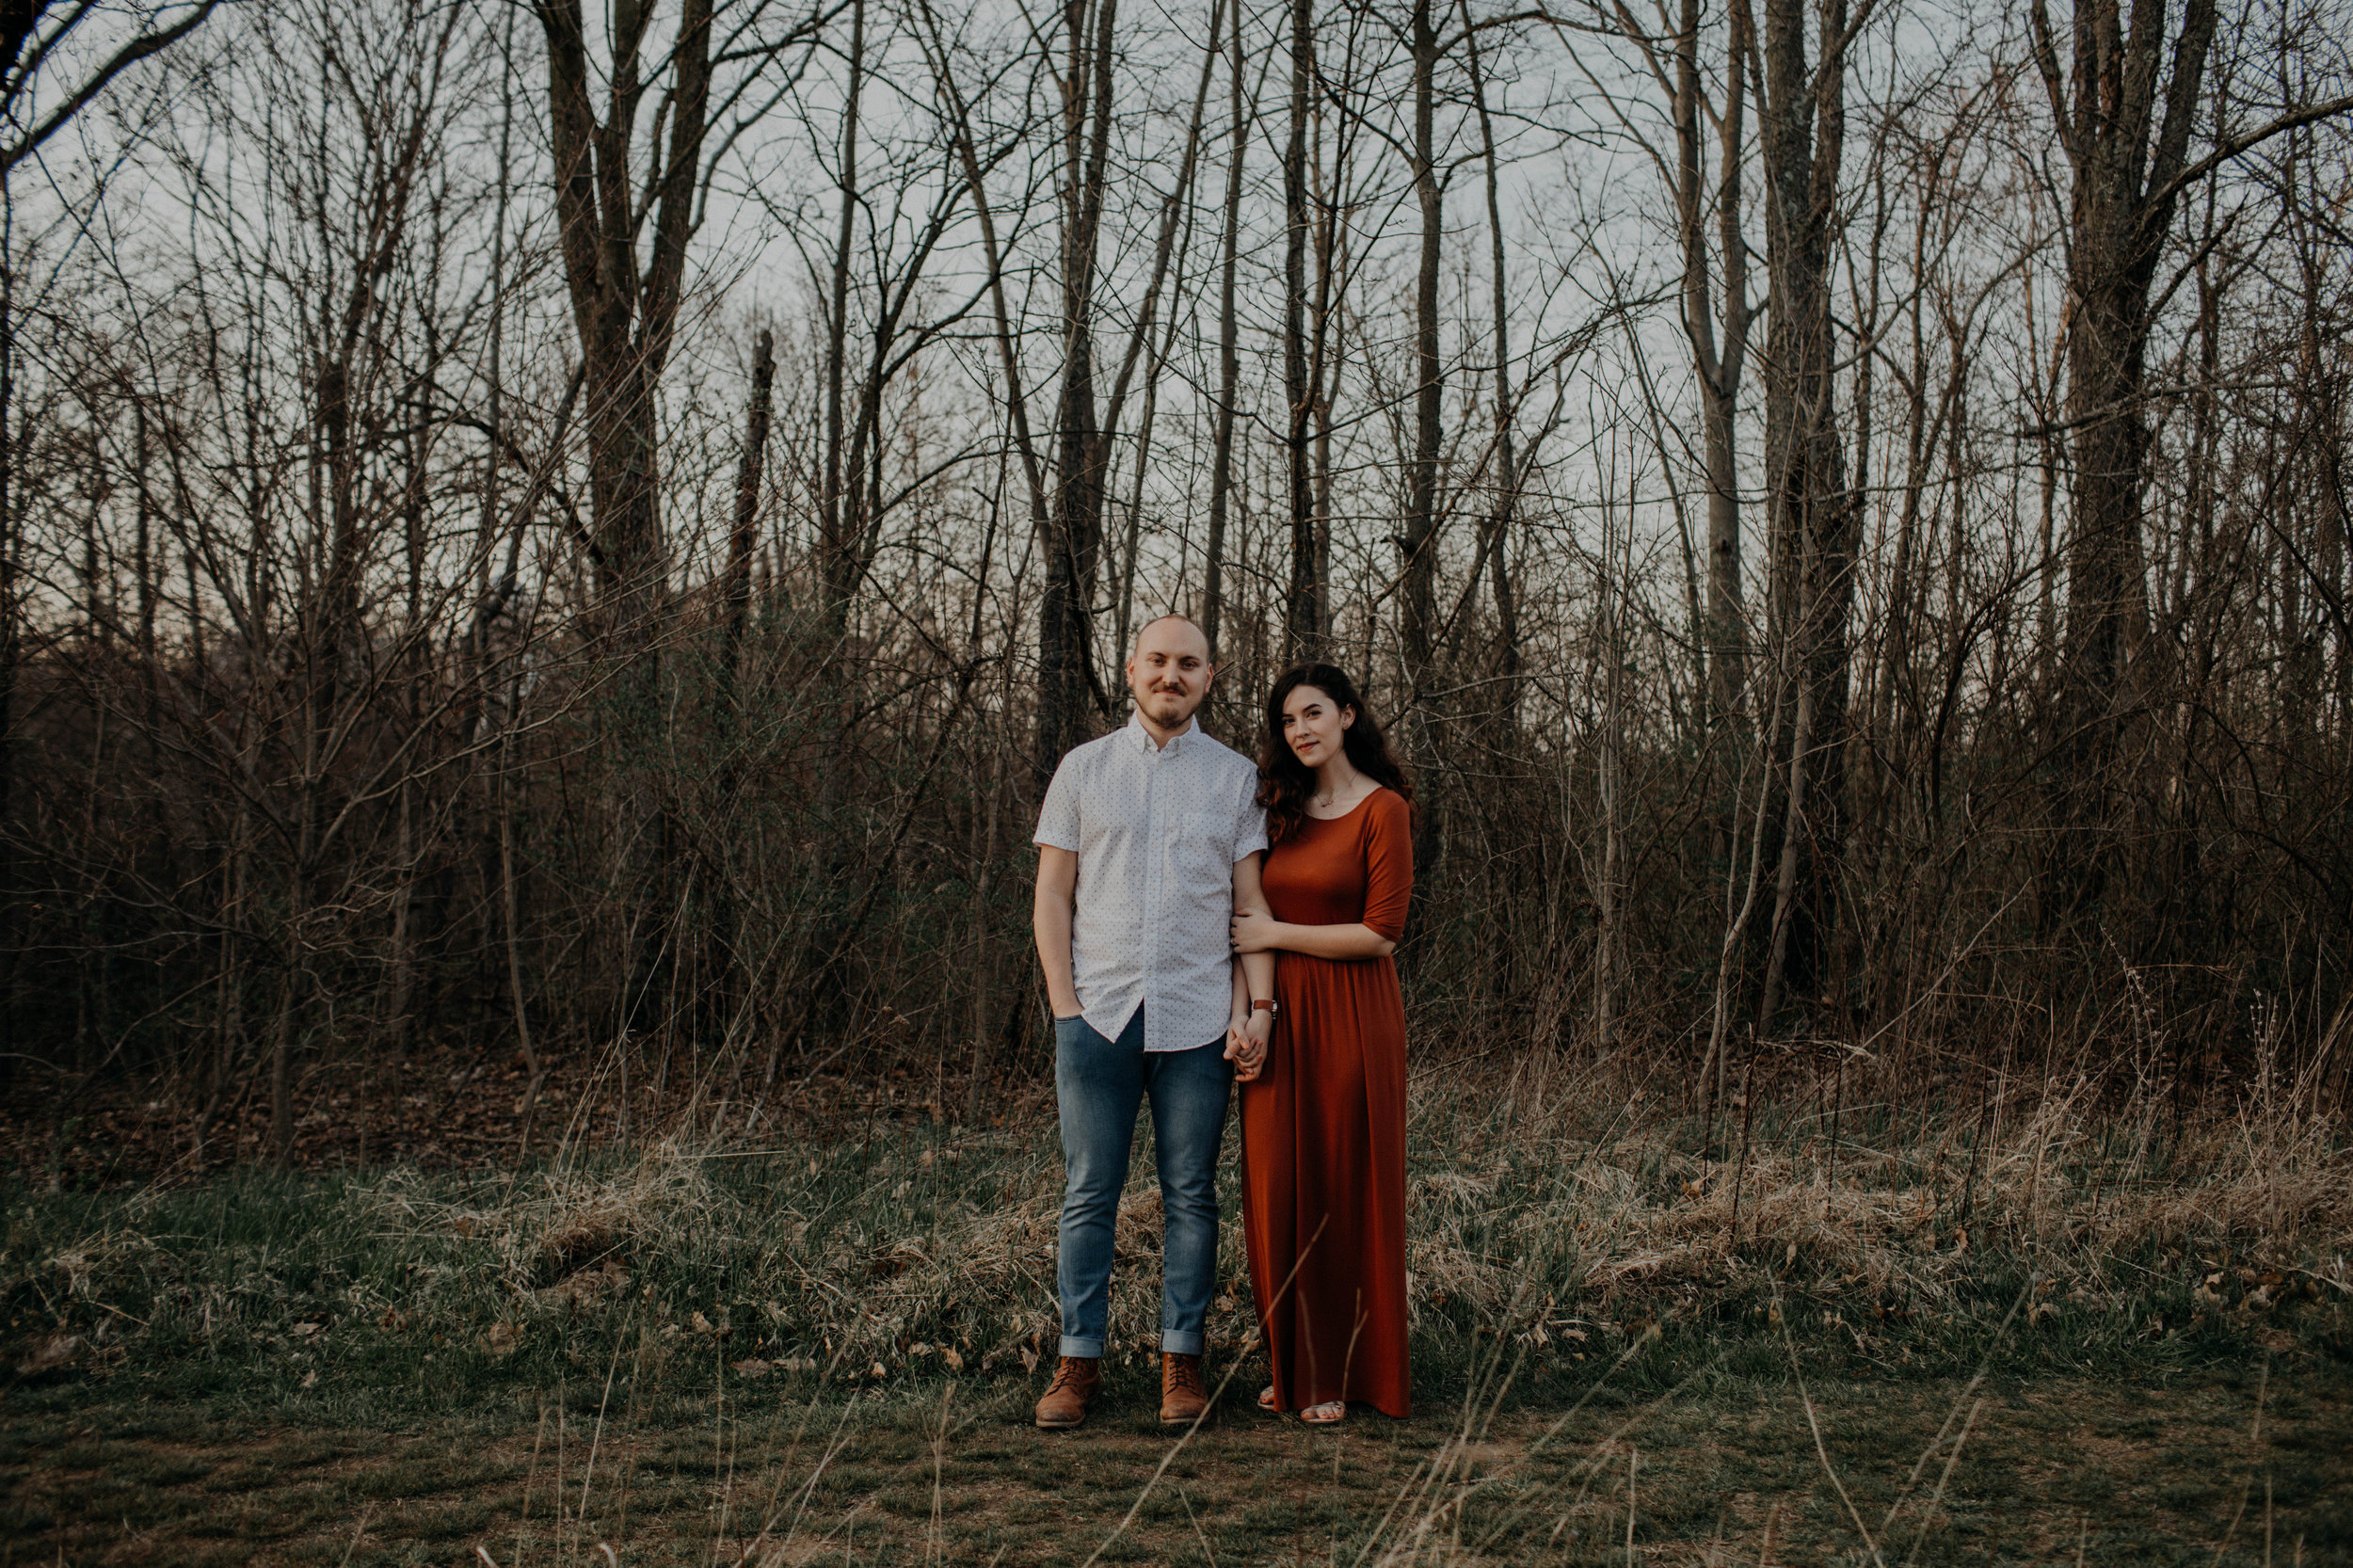 highbanks metro park columbus ohio wedding and couples session photographer46.jpg